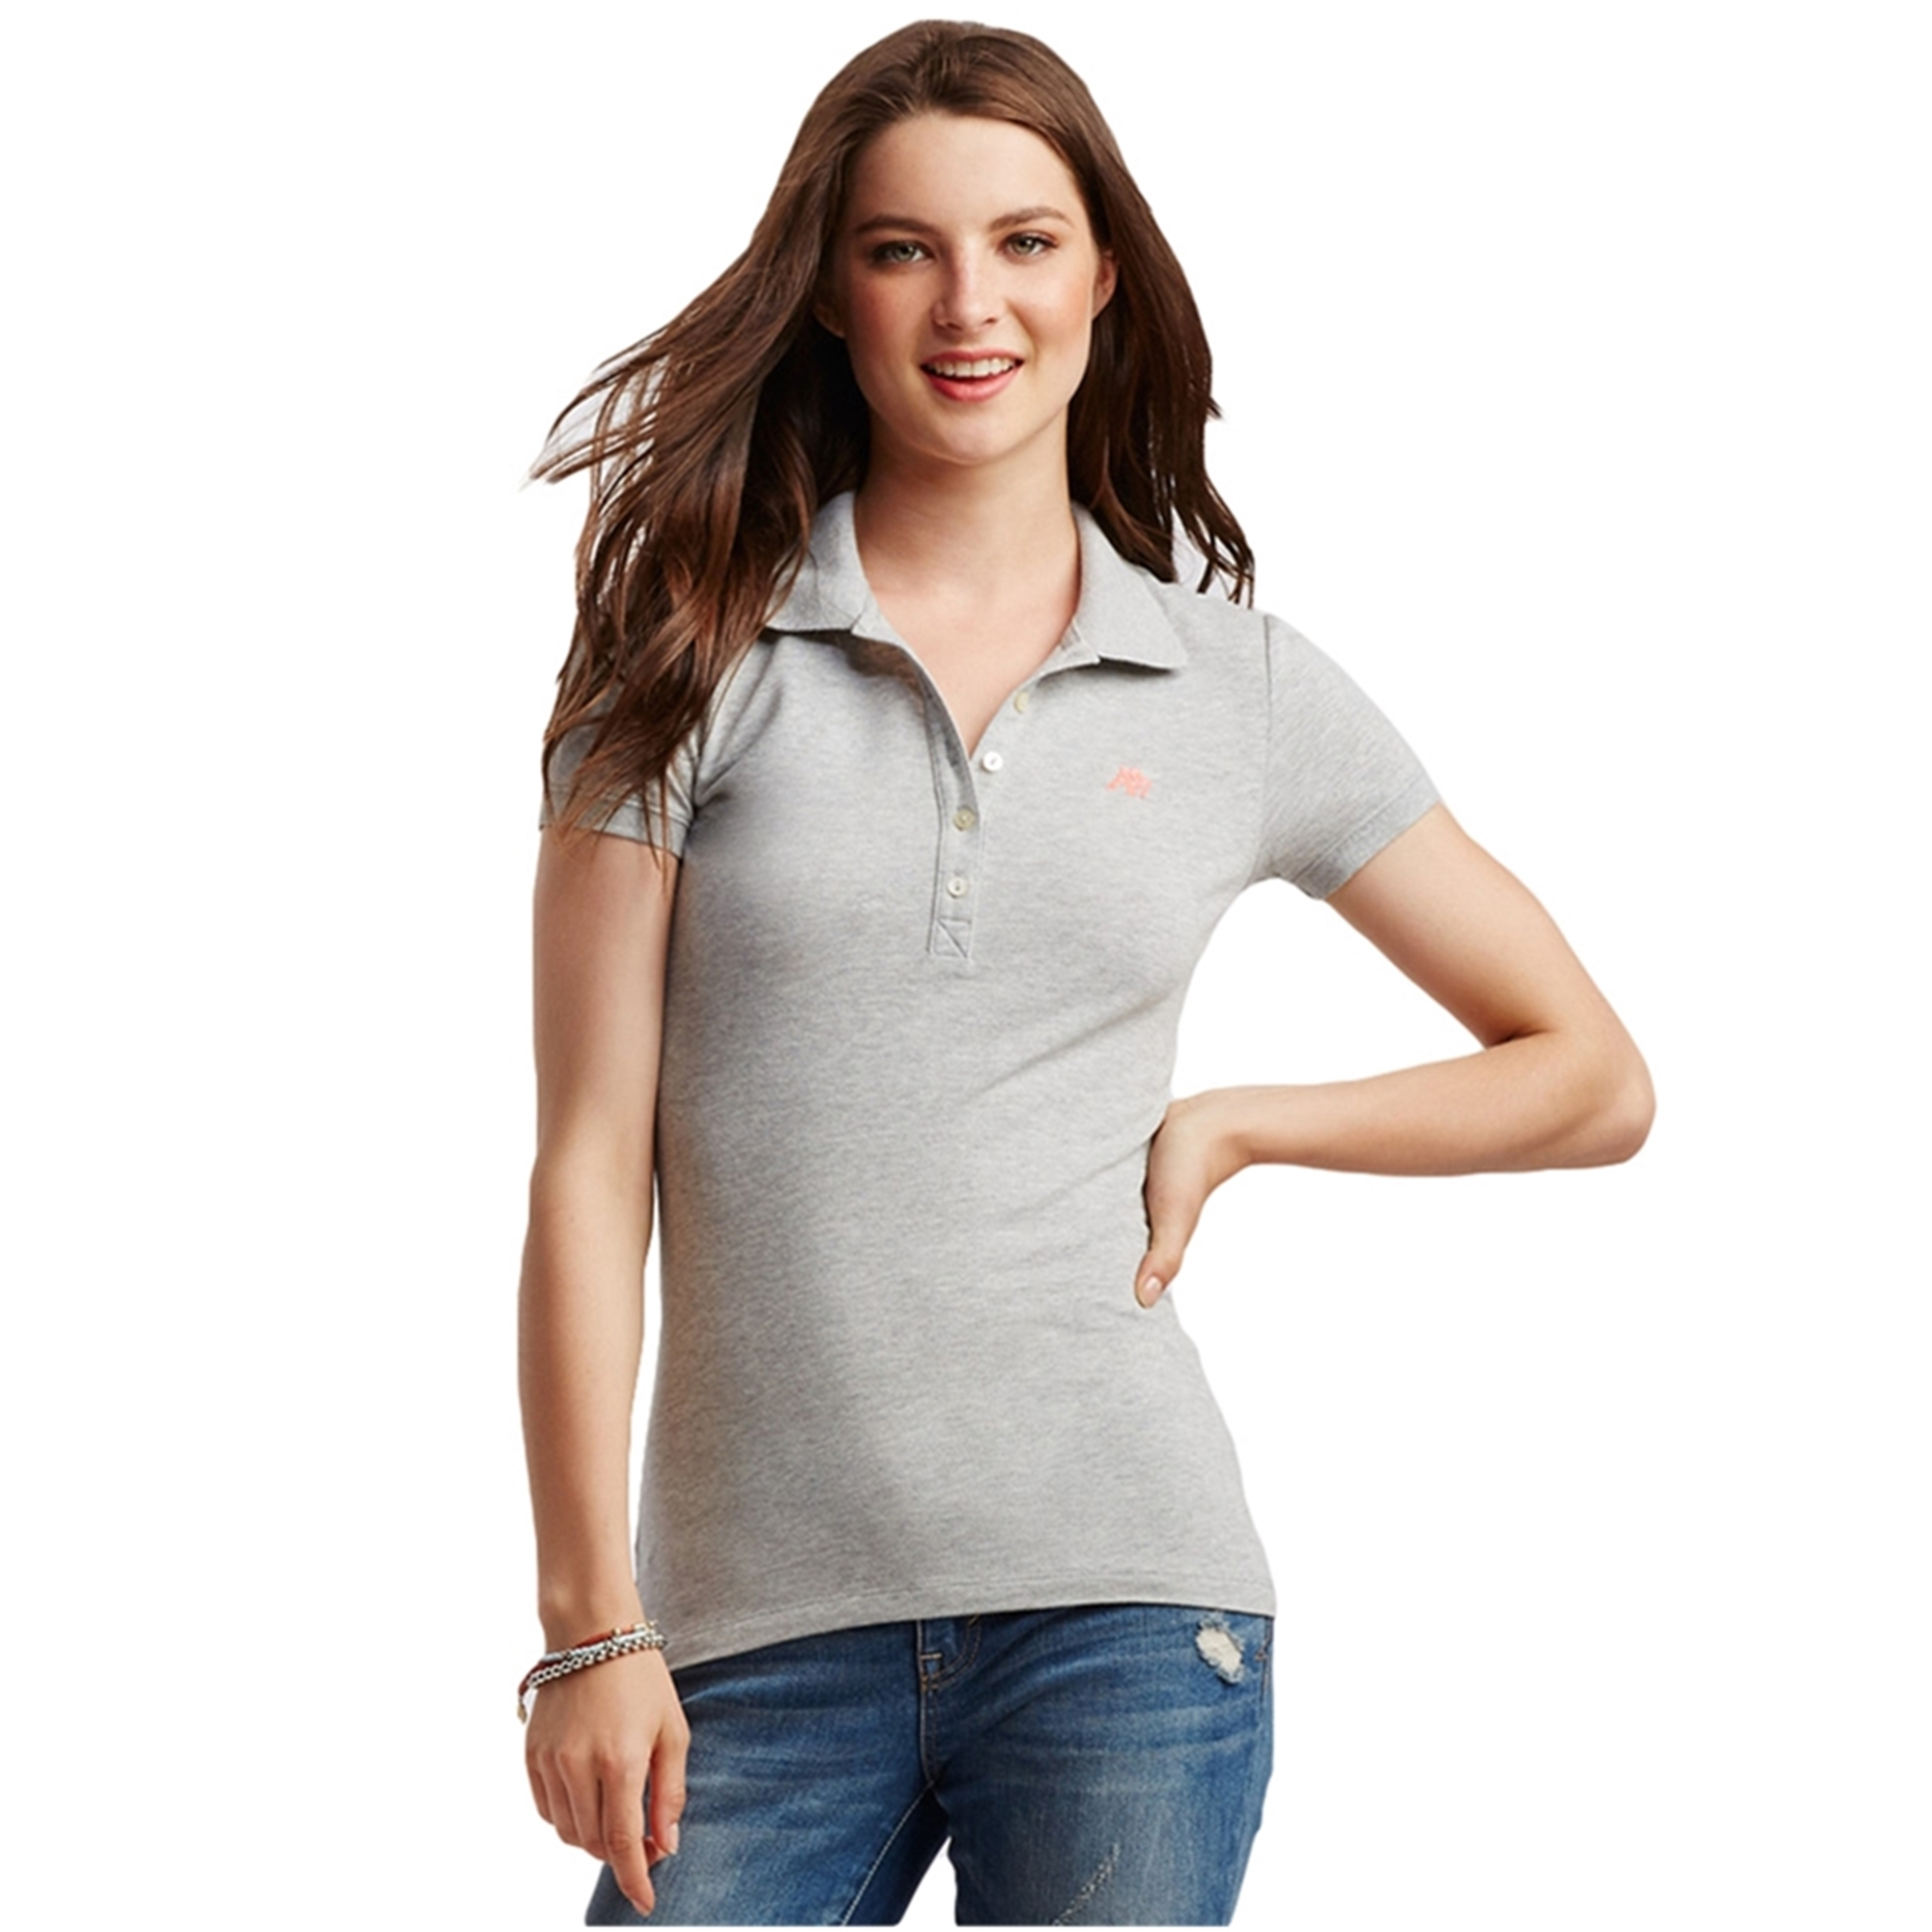 AEROPOSTALE Womens Solid Polo Shirt